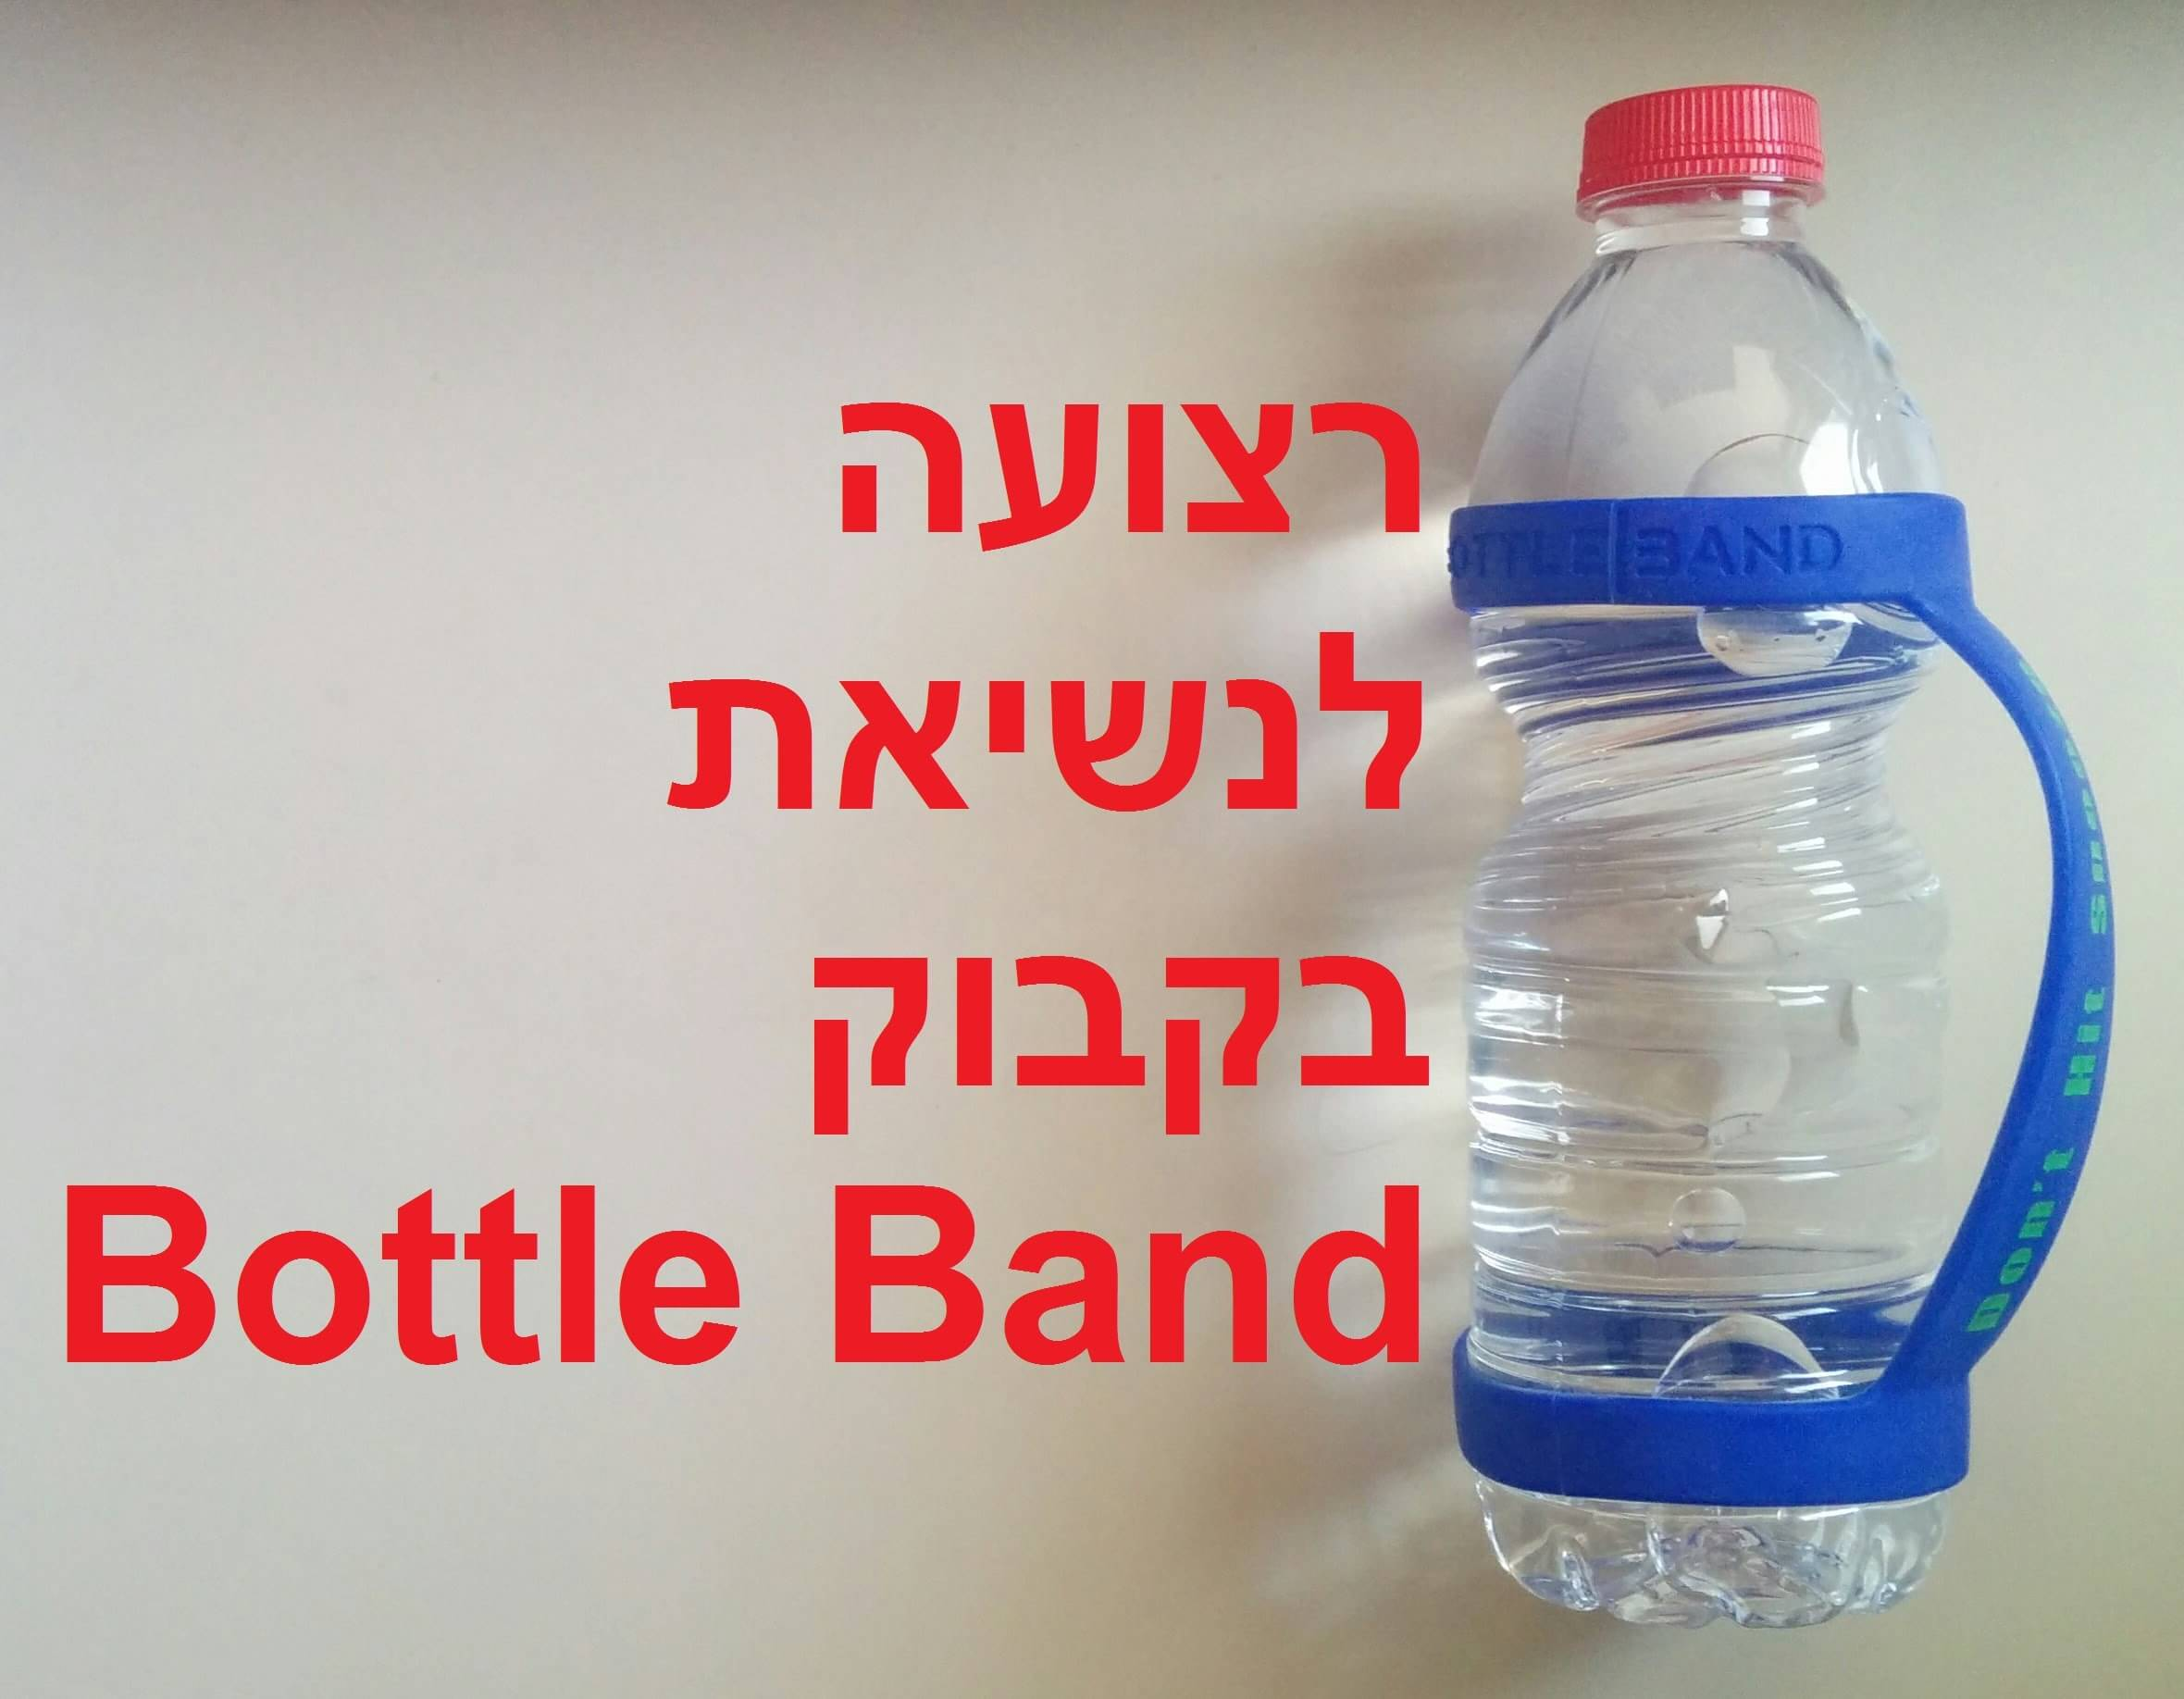 Bottle Band